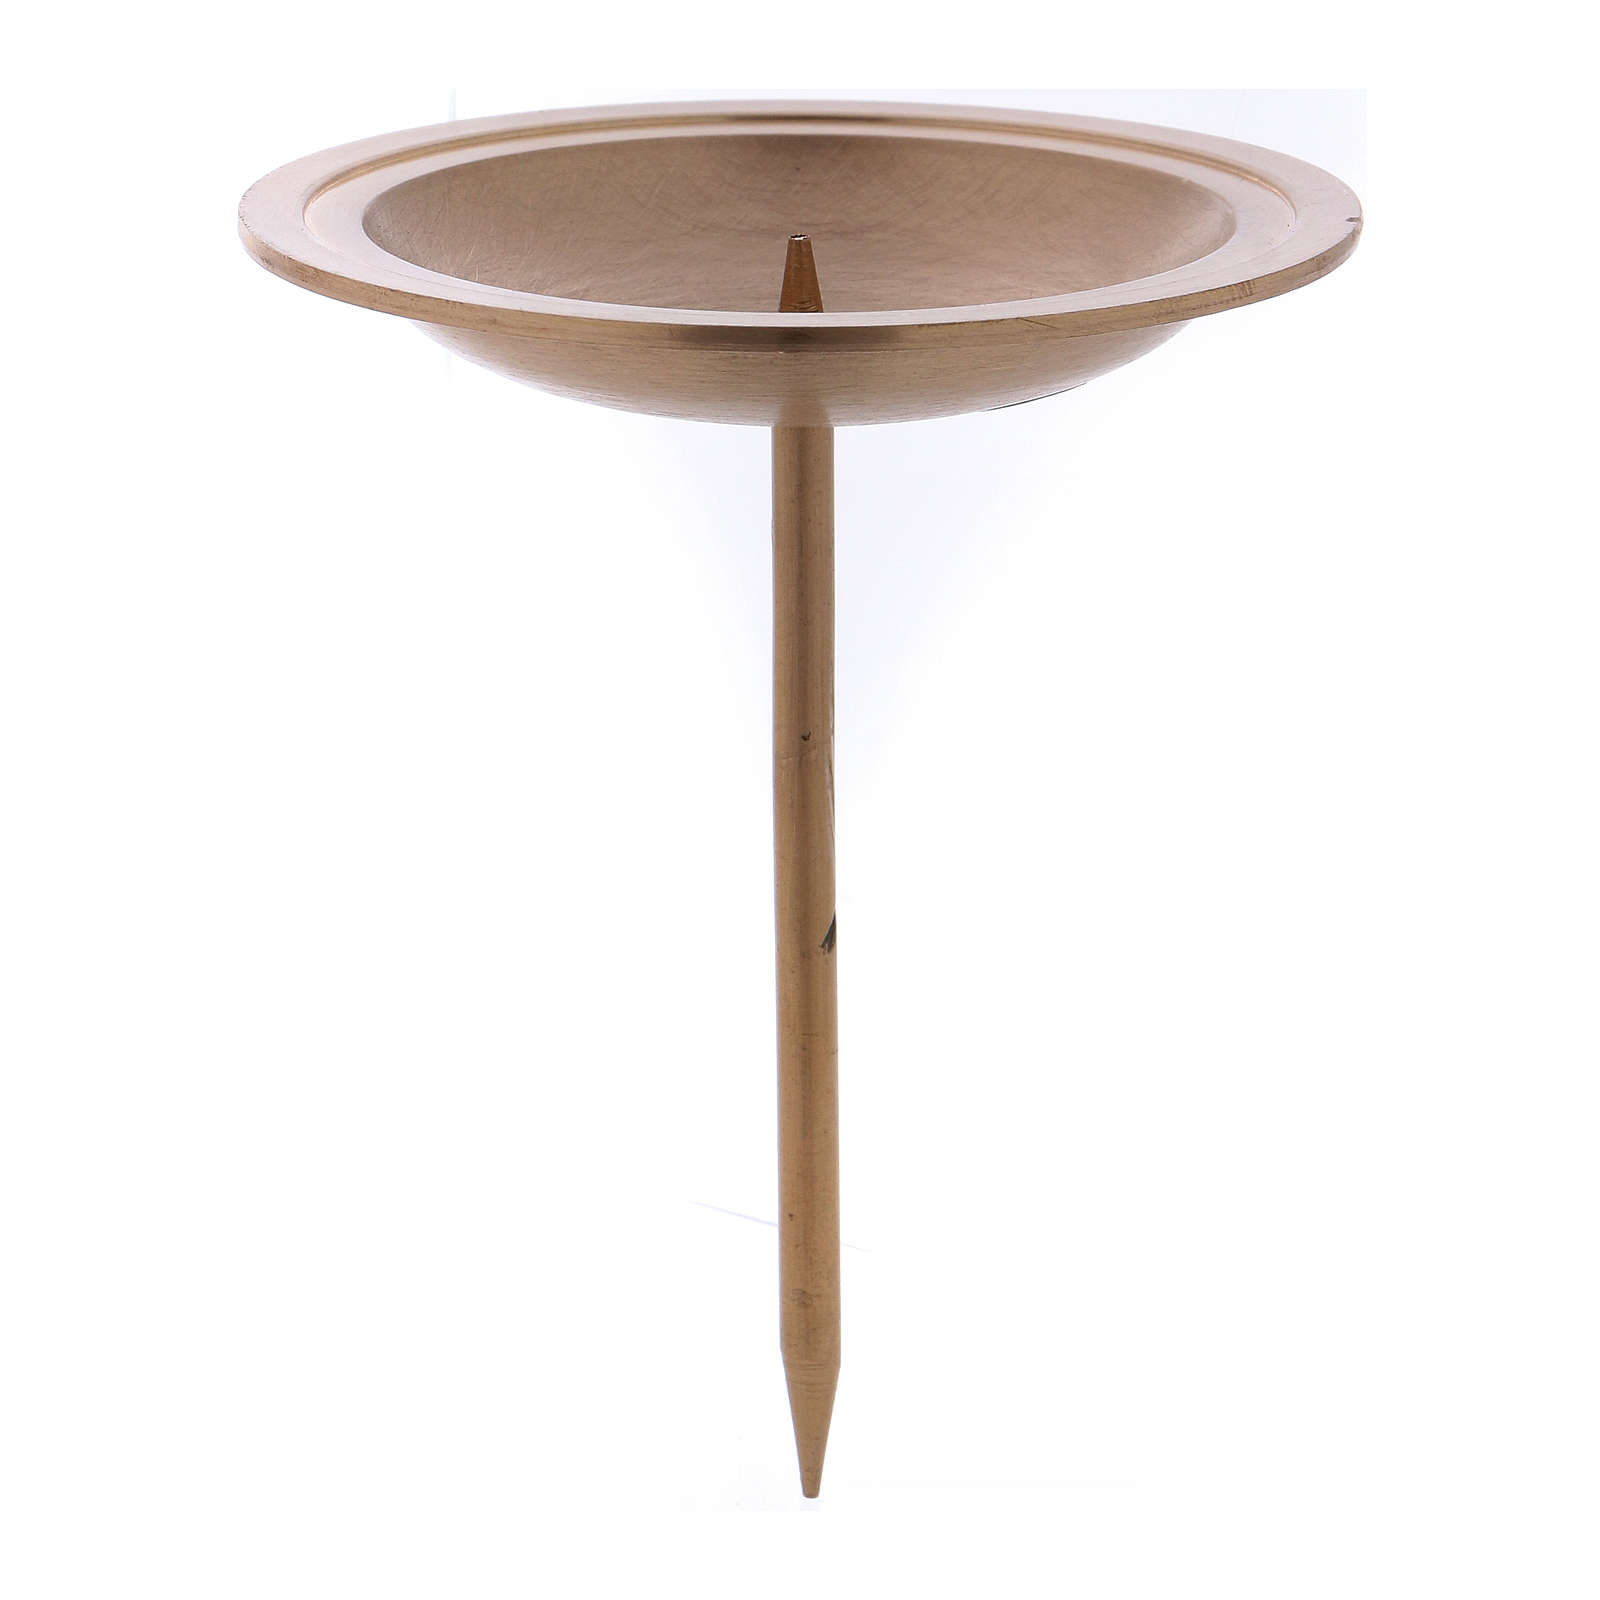 Candle holder for Advent wreath in golden brass, 4 pcs 3